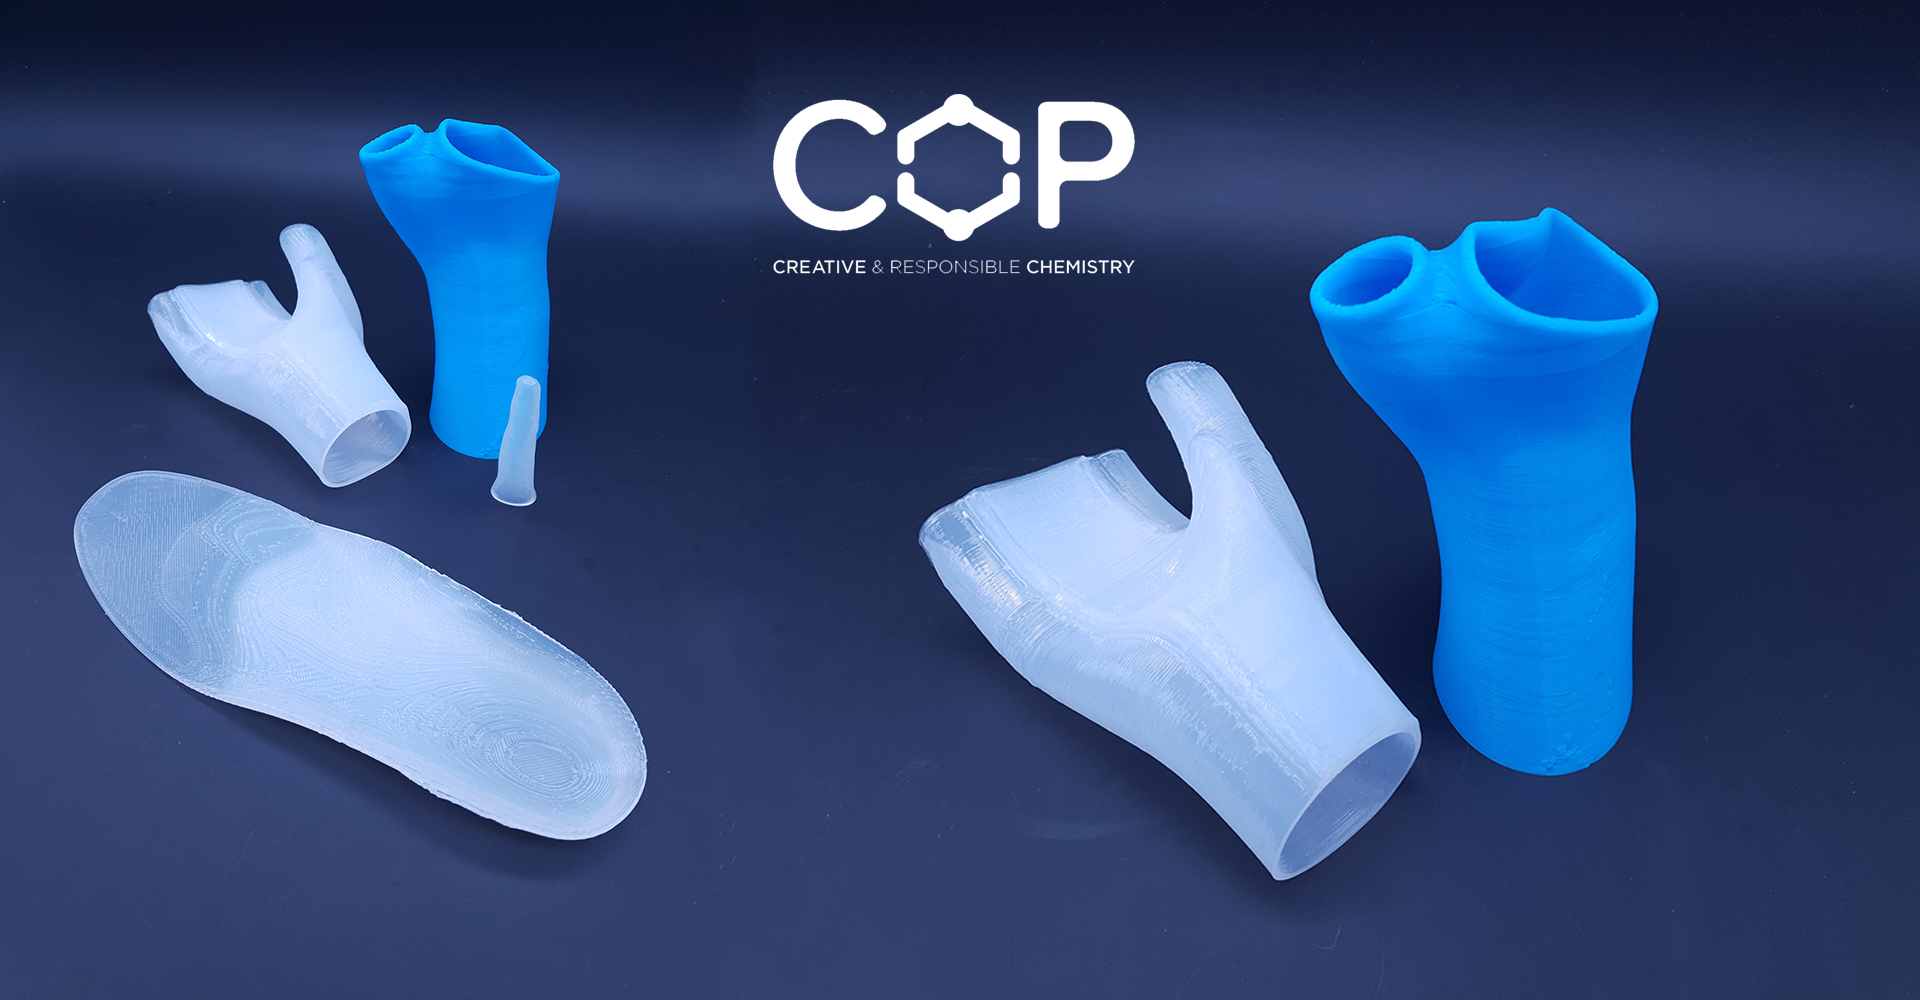 COP Chimie's sustainable chemistry: silicone 3D printing for orthopedic devices